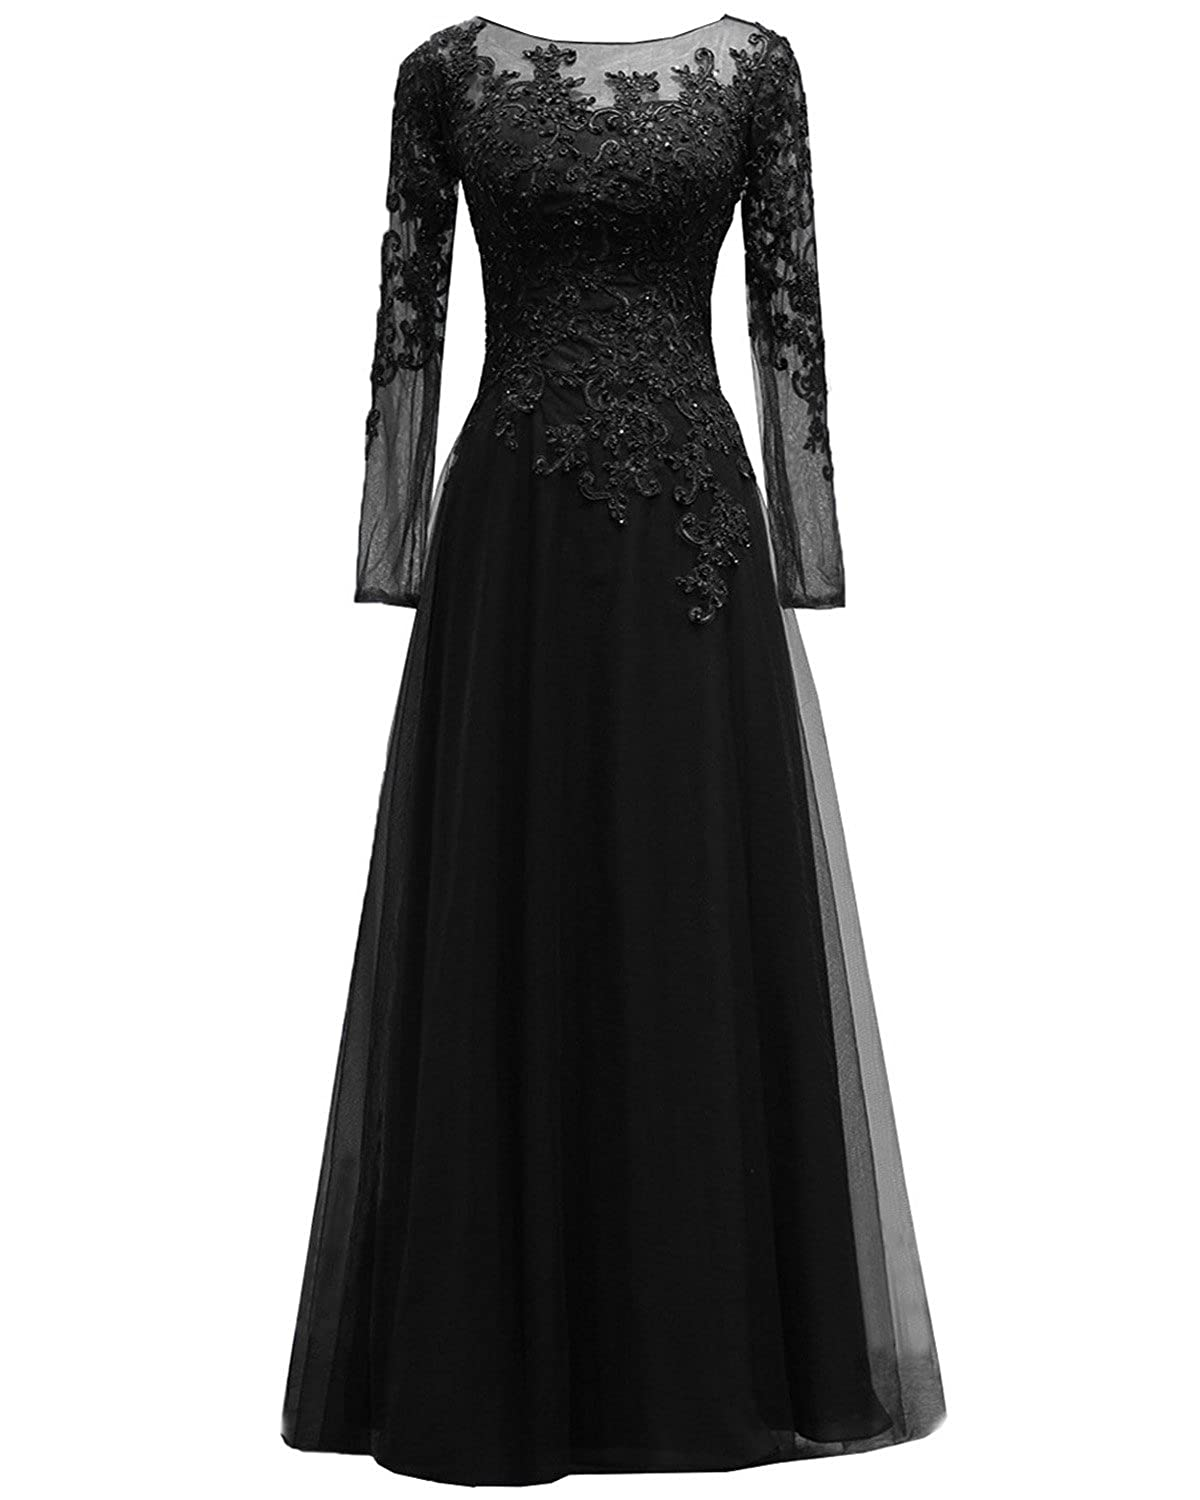 769d3c689 2.Size:Feature:Beads, Jewel Neck, Floor Length, Long Sleeve.  3.Occation:Wedding, Evening, Prom ,Party,Homecoming,Cocktail,Special  Time,other formal outdoor ...